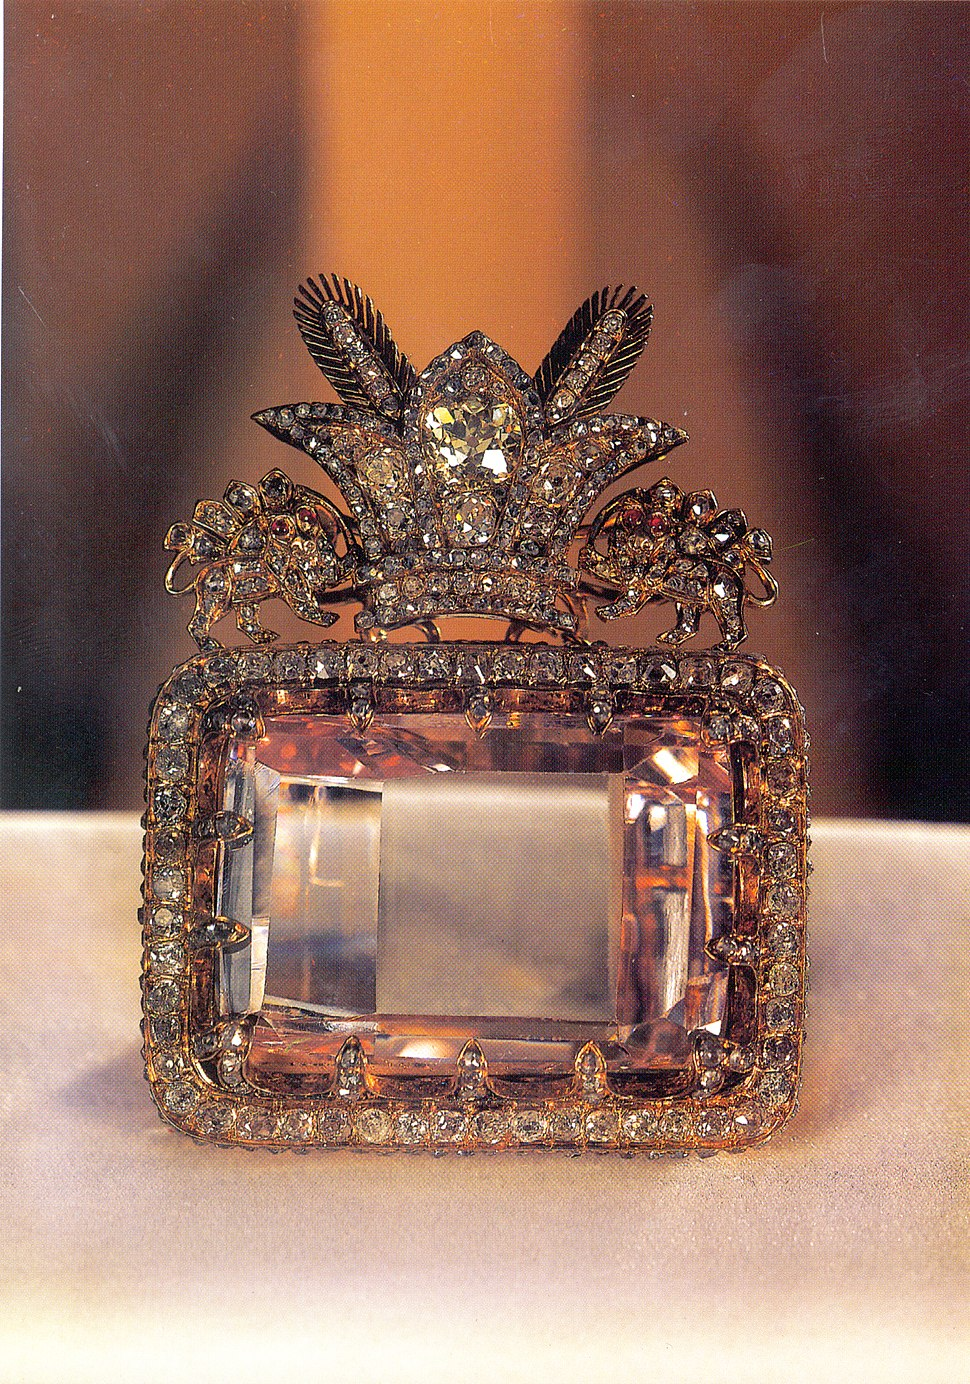 The Daria-e Noor (Sea of Light) Diamond from the collection of the national jewels of Iran at Central Bank of Islamic Republic of Iran